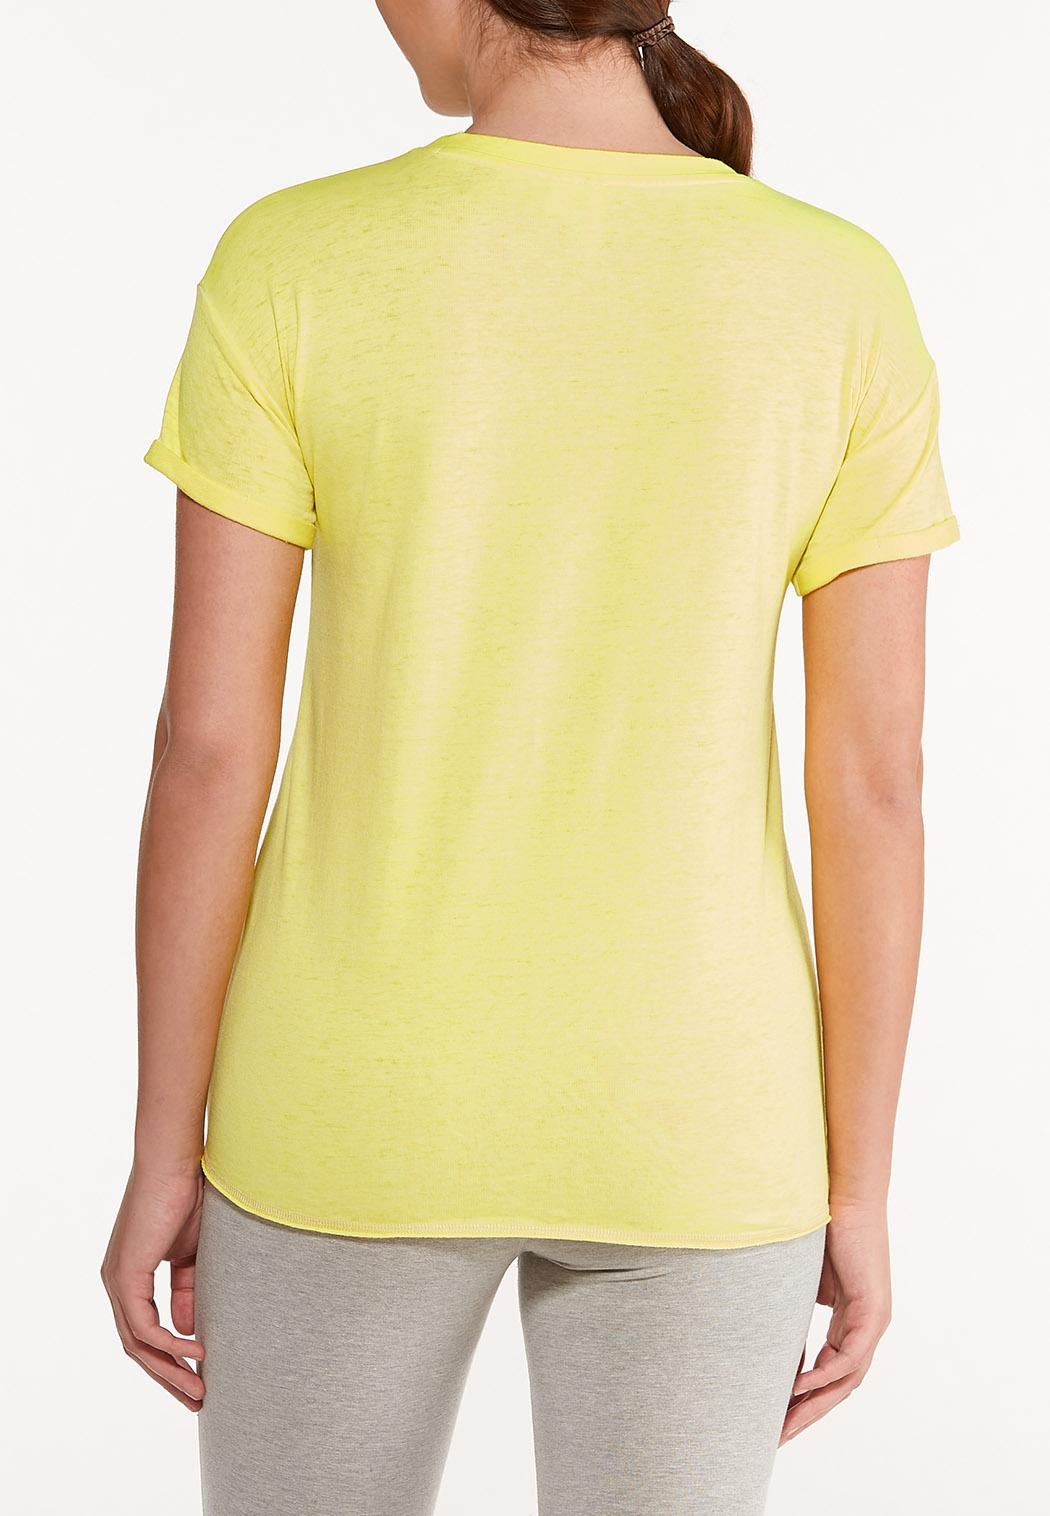 Empowered Knotted Tee (Item #44549232)